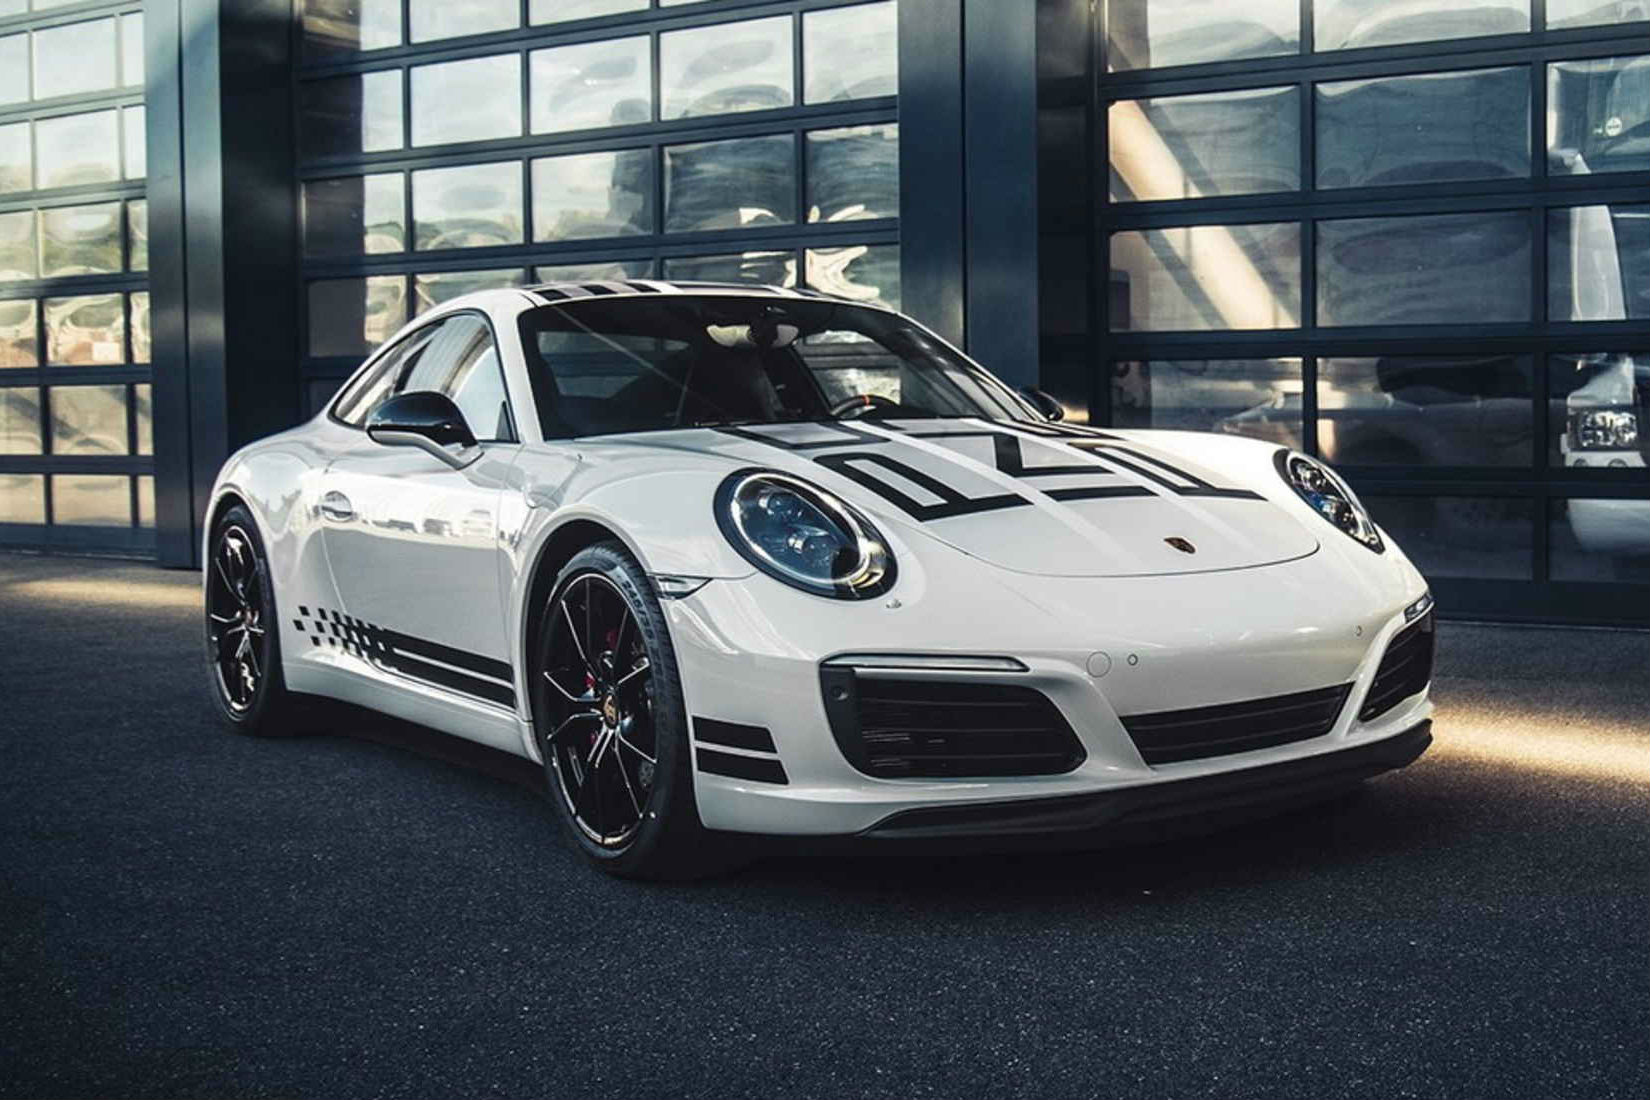 Porsche 911 Carrera S Endurance Racing Edition Hypebeast